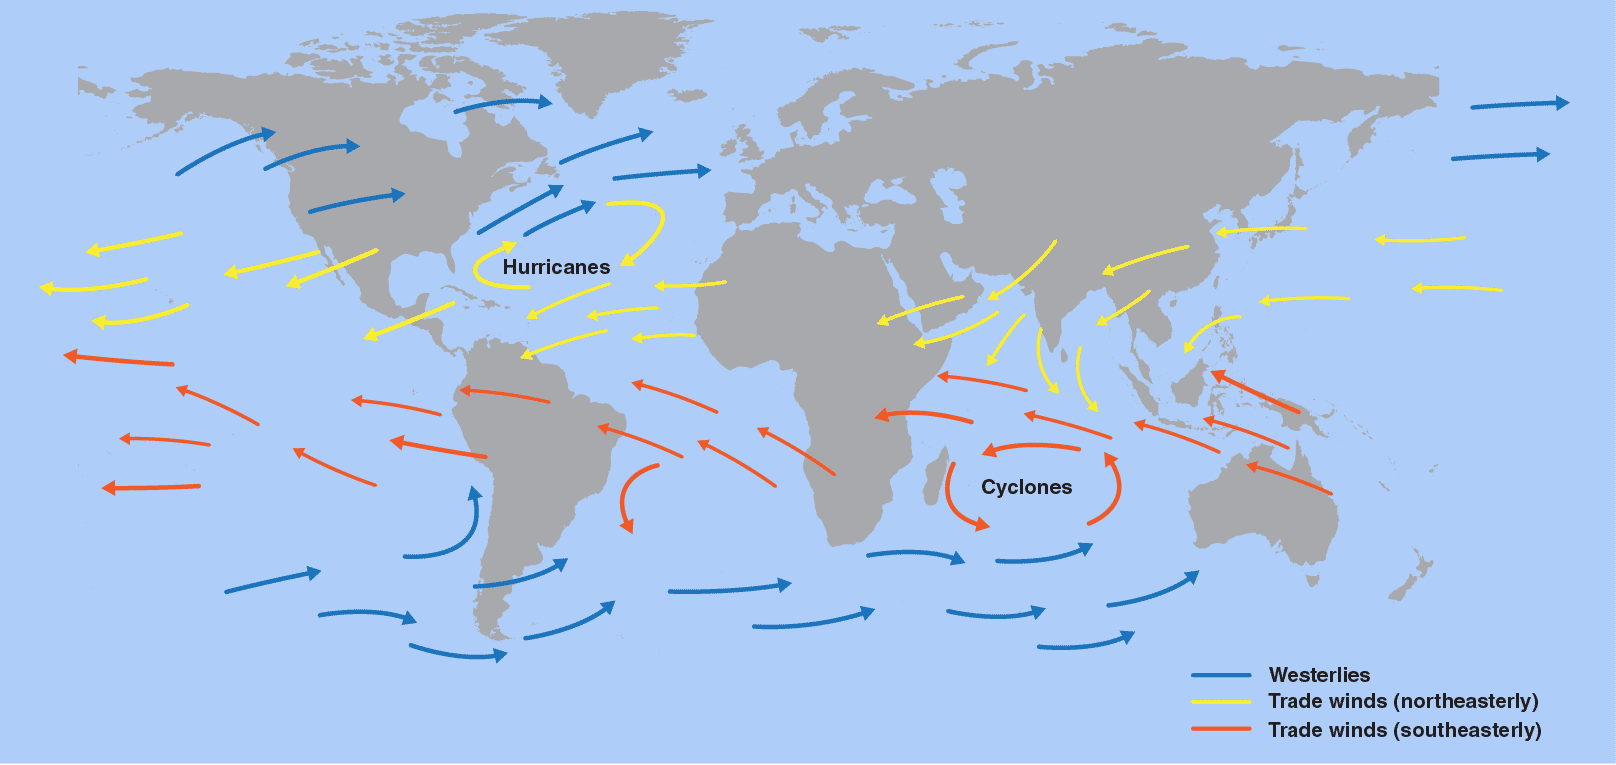 global-trade-winds-map